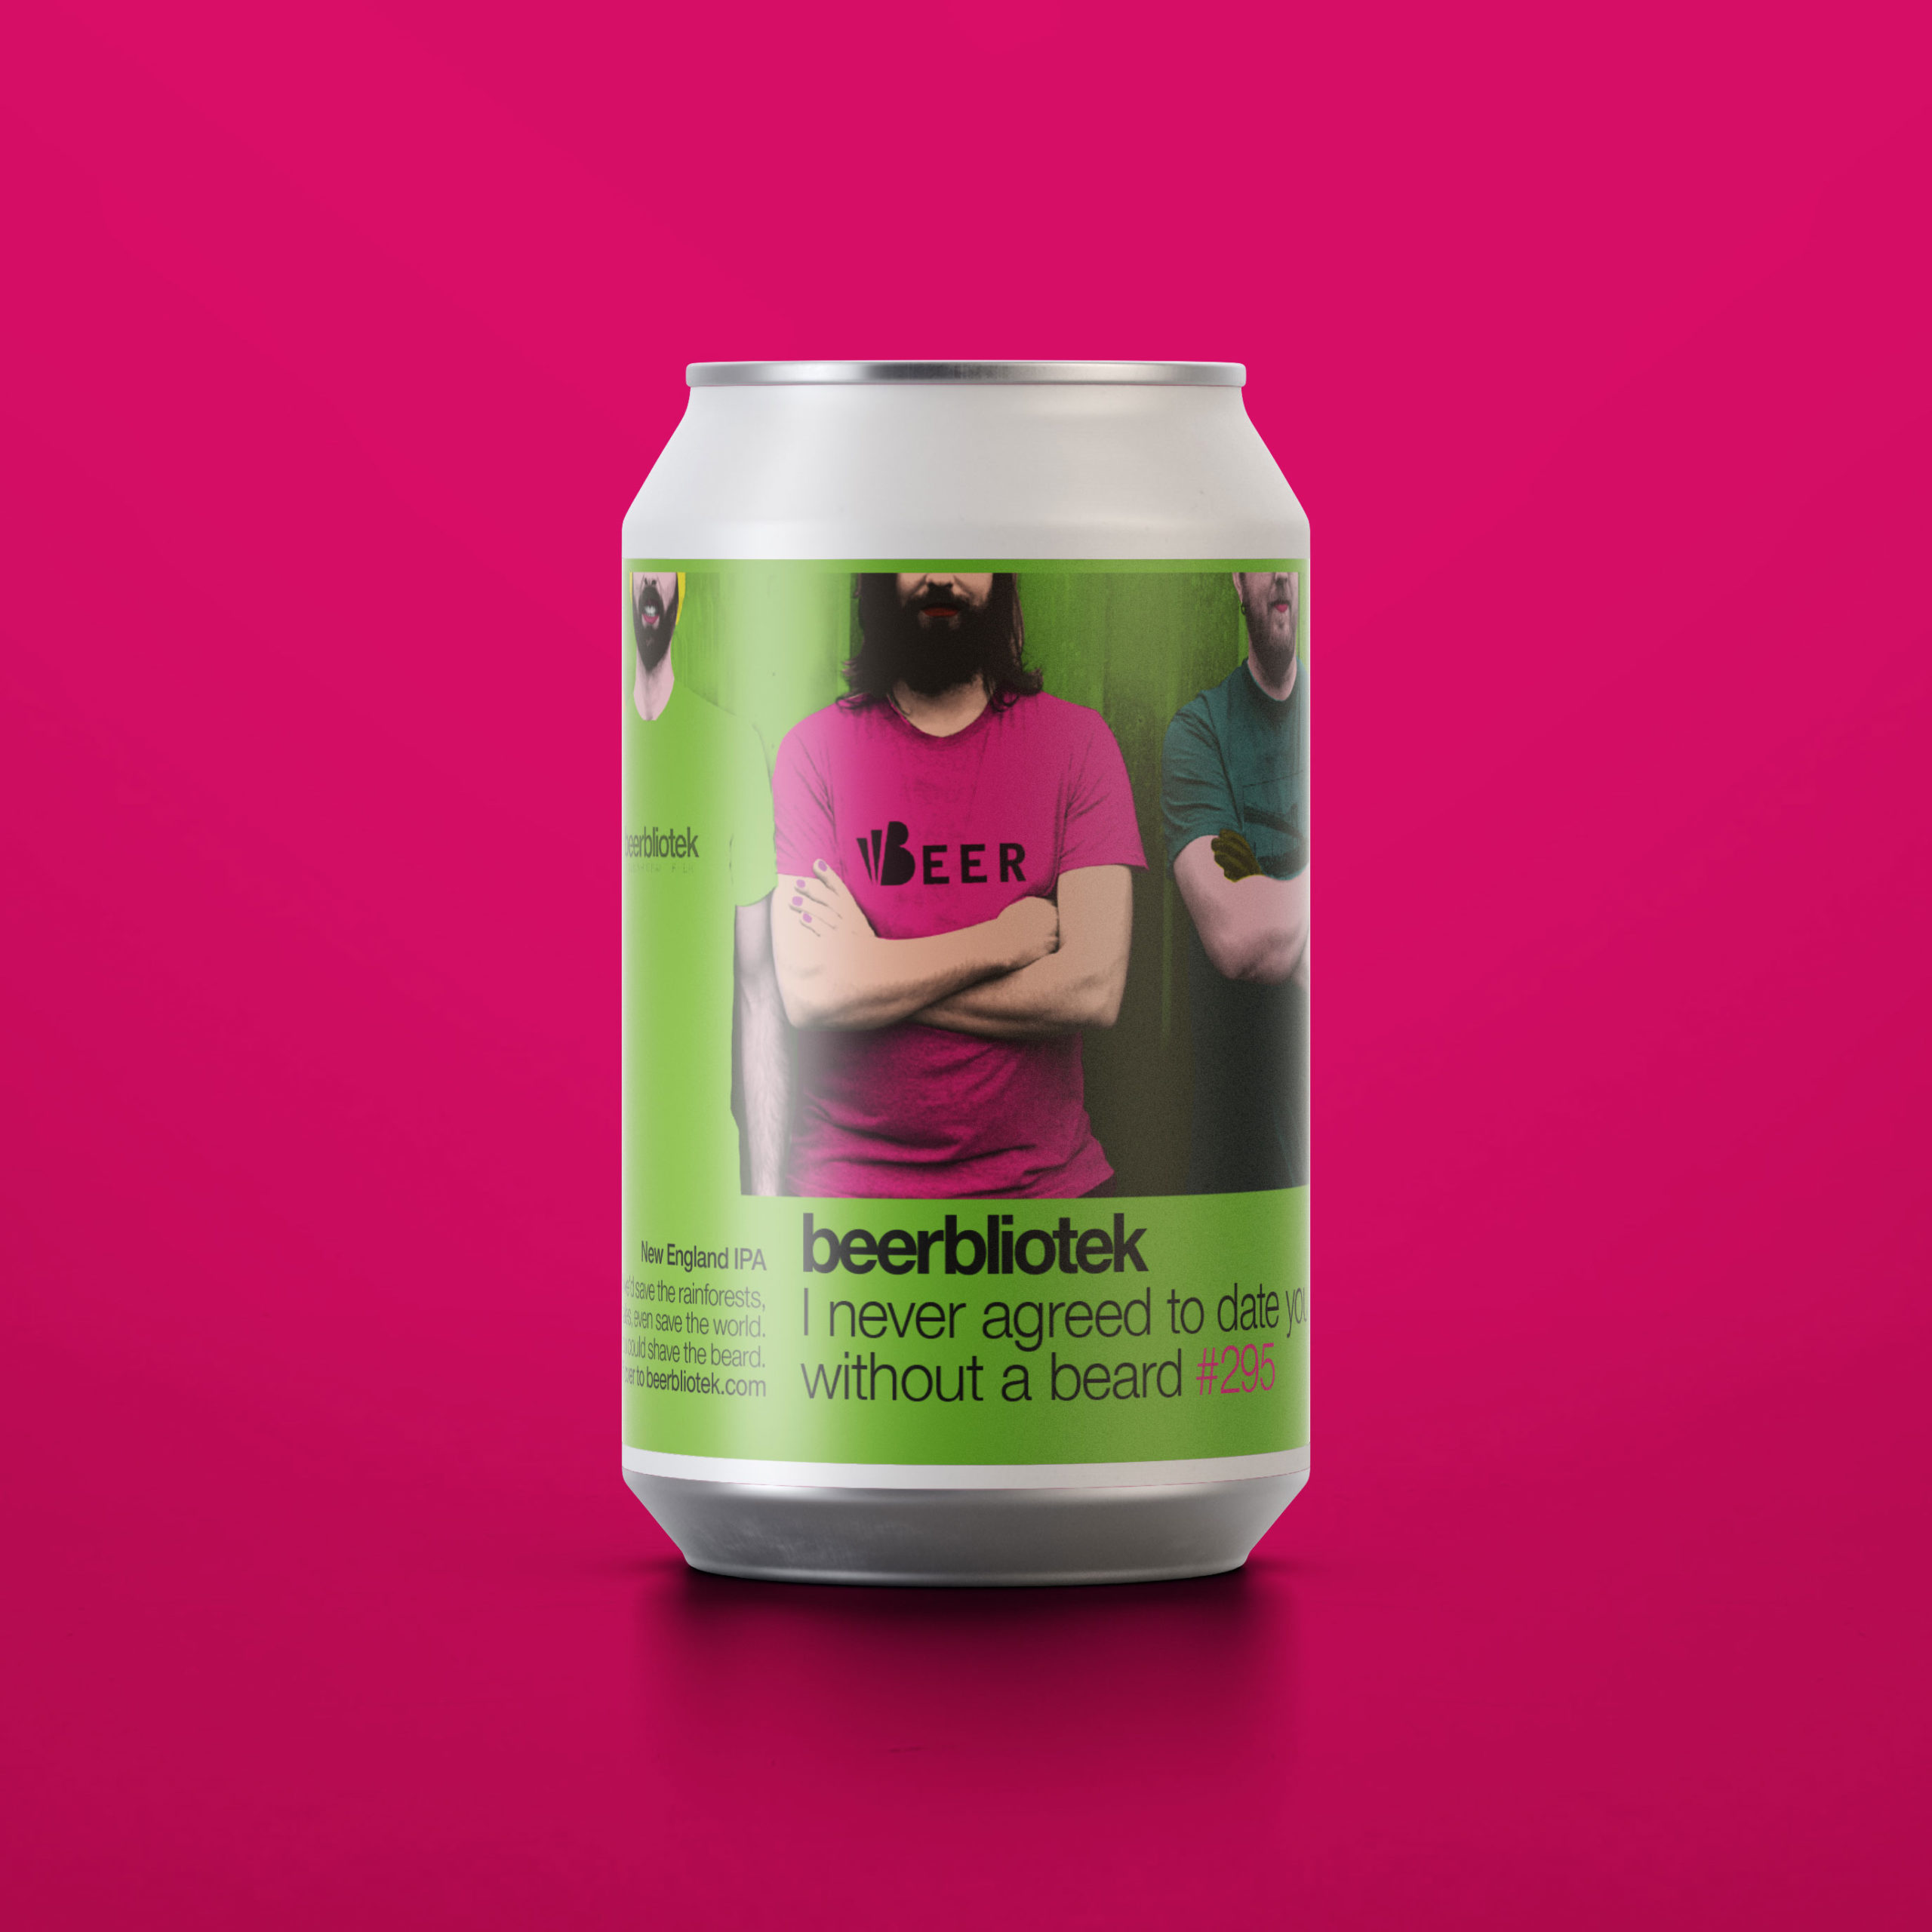 A can packshot of I never agreed to date you without a beard, a New England IPA brewed in Gothenburg, by Swedish Craft Brewery Beerbliotek.